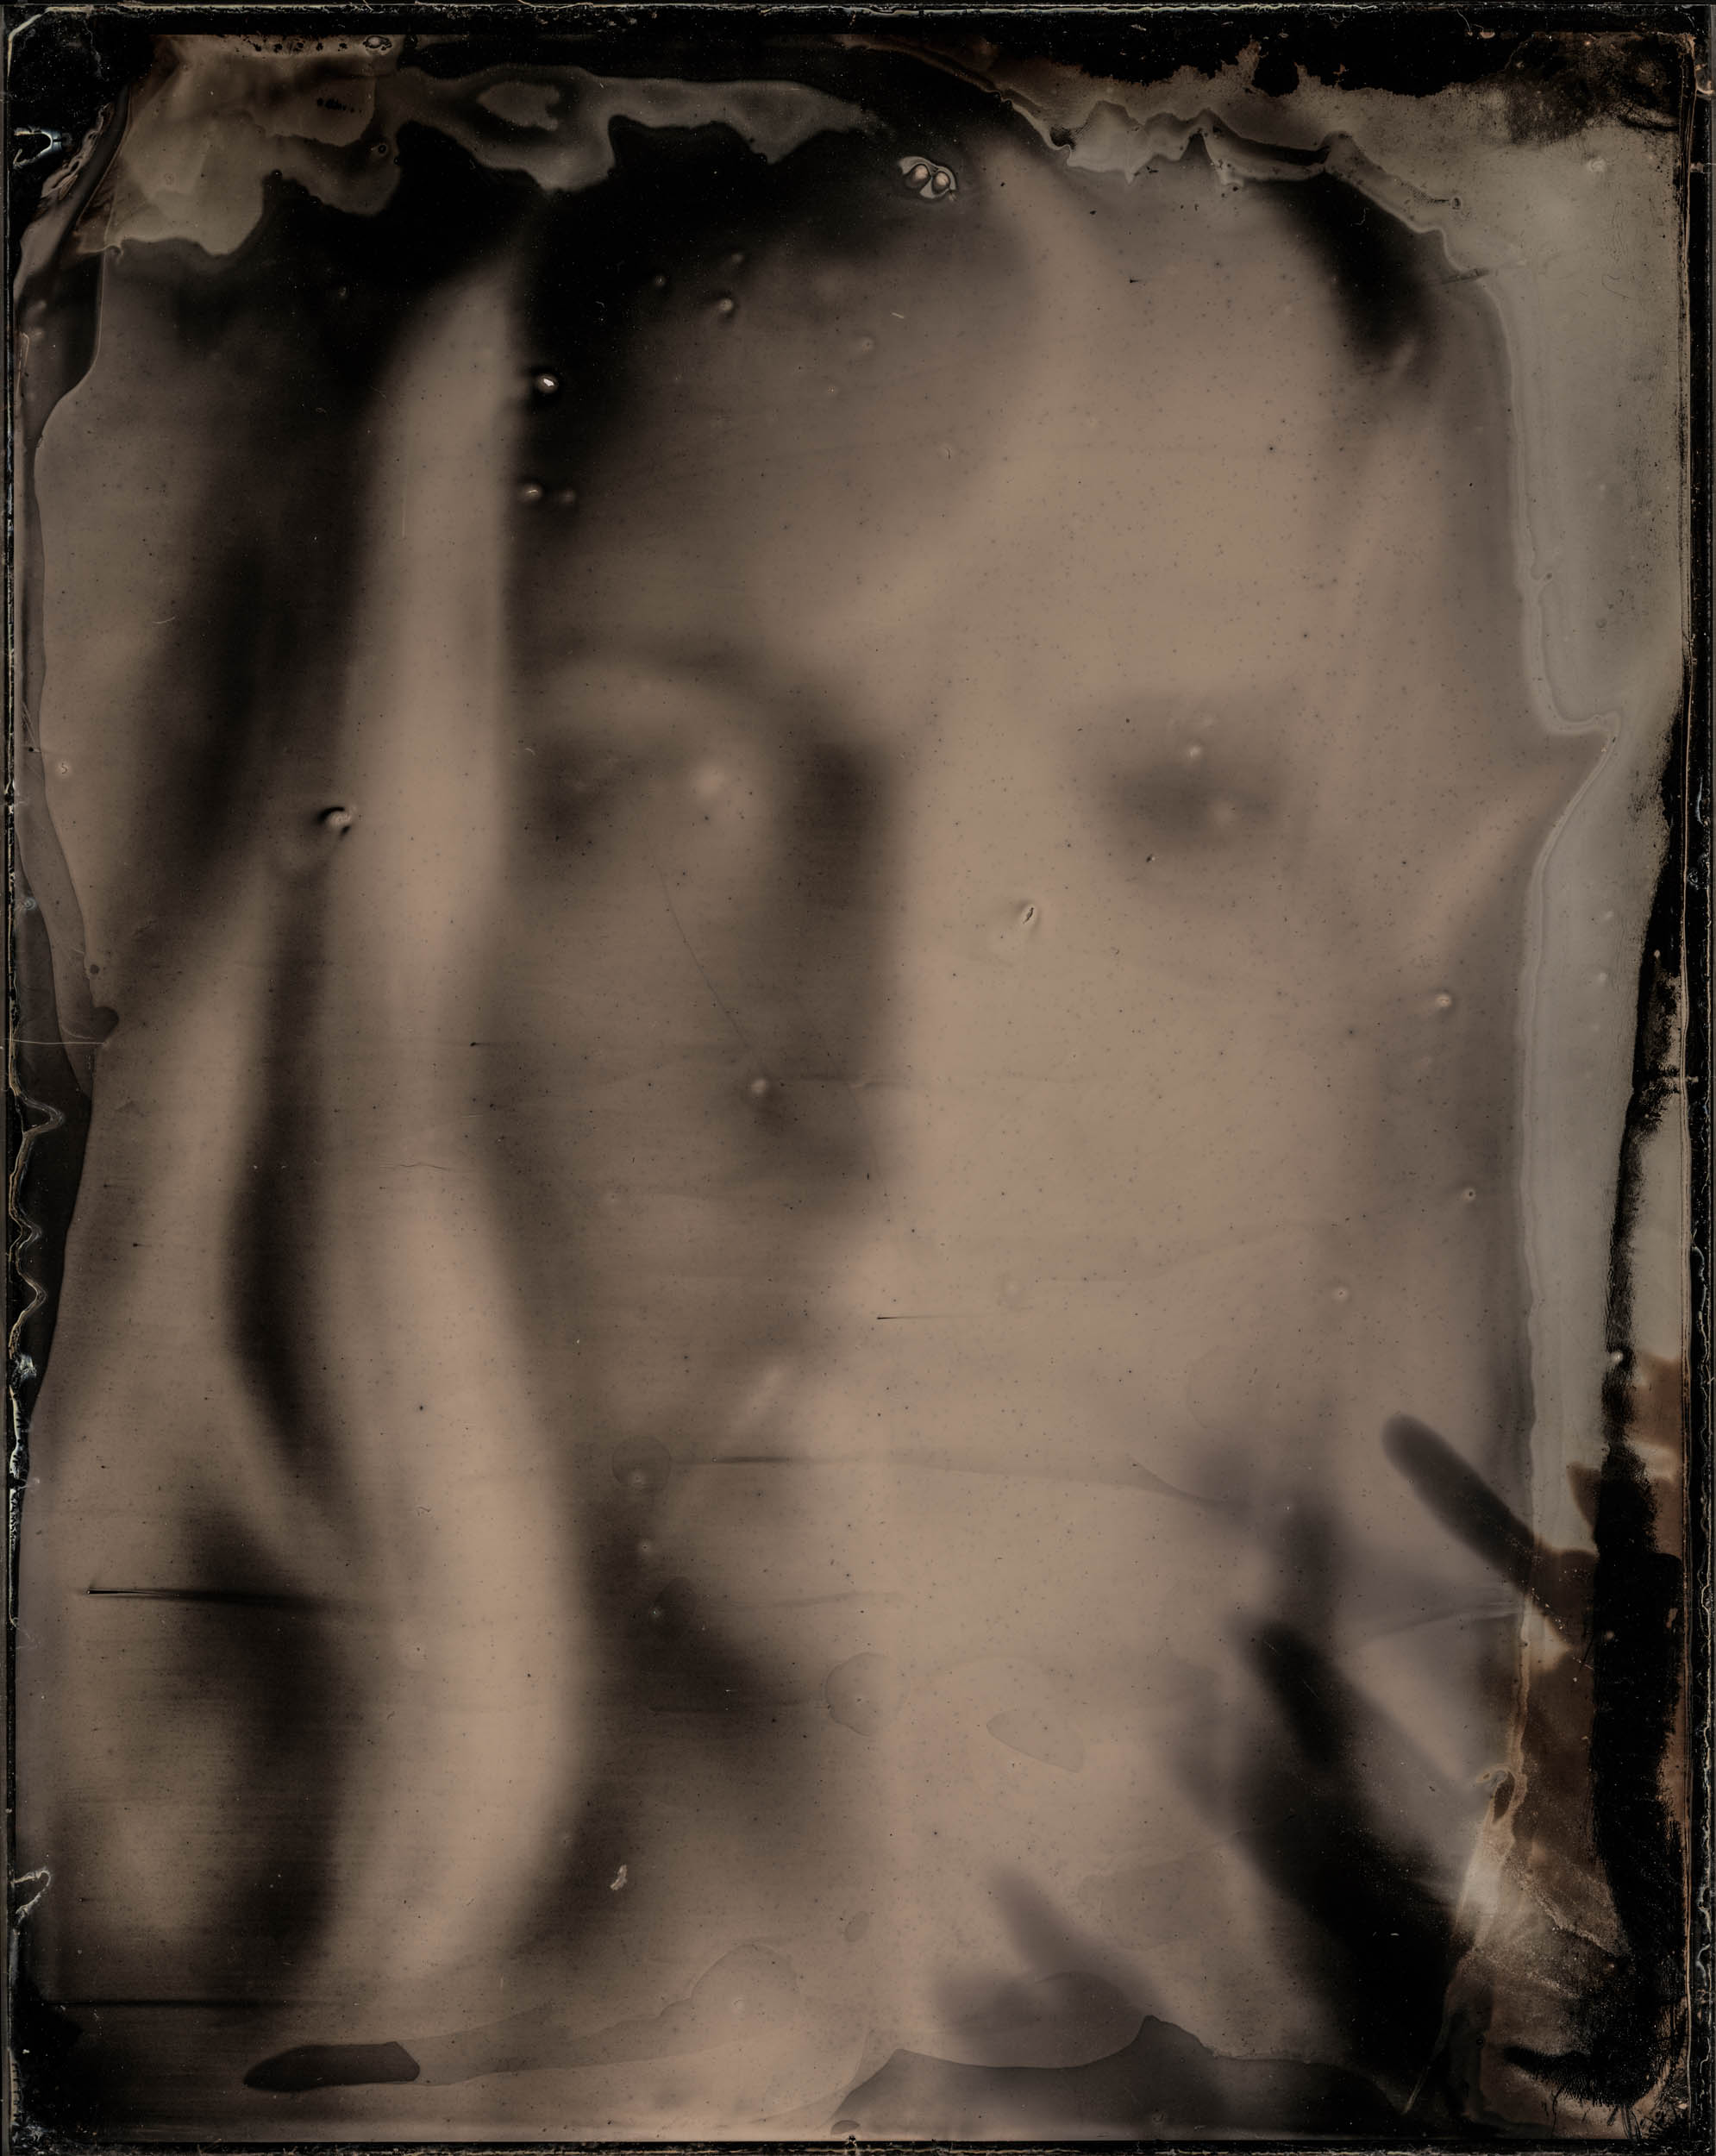 Parting The Veil, ambrotype original, archival pigment print, 40 in. x 50 in., 2019